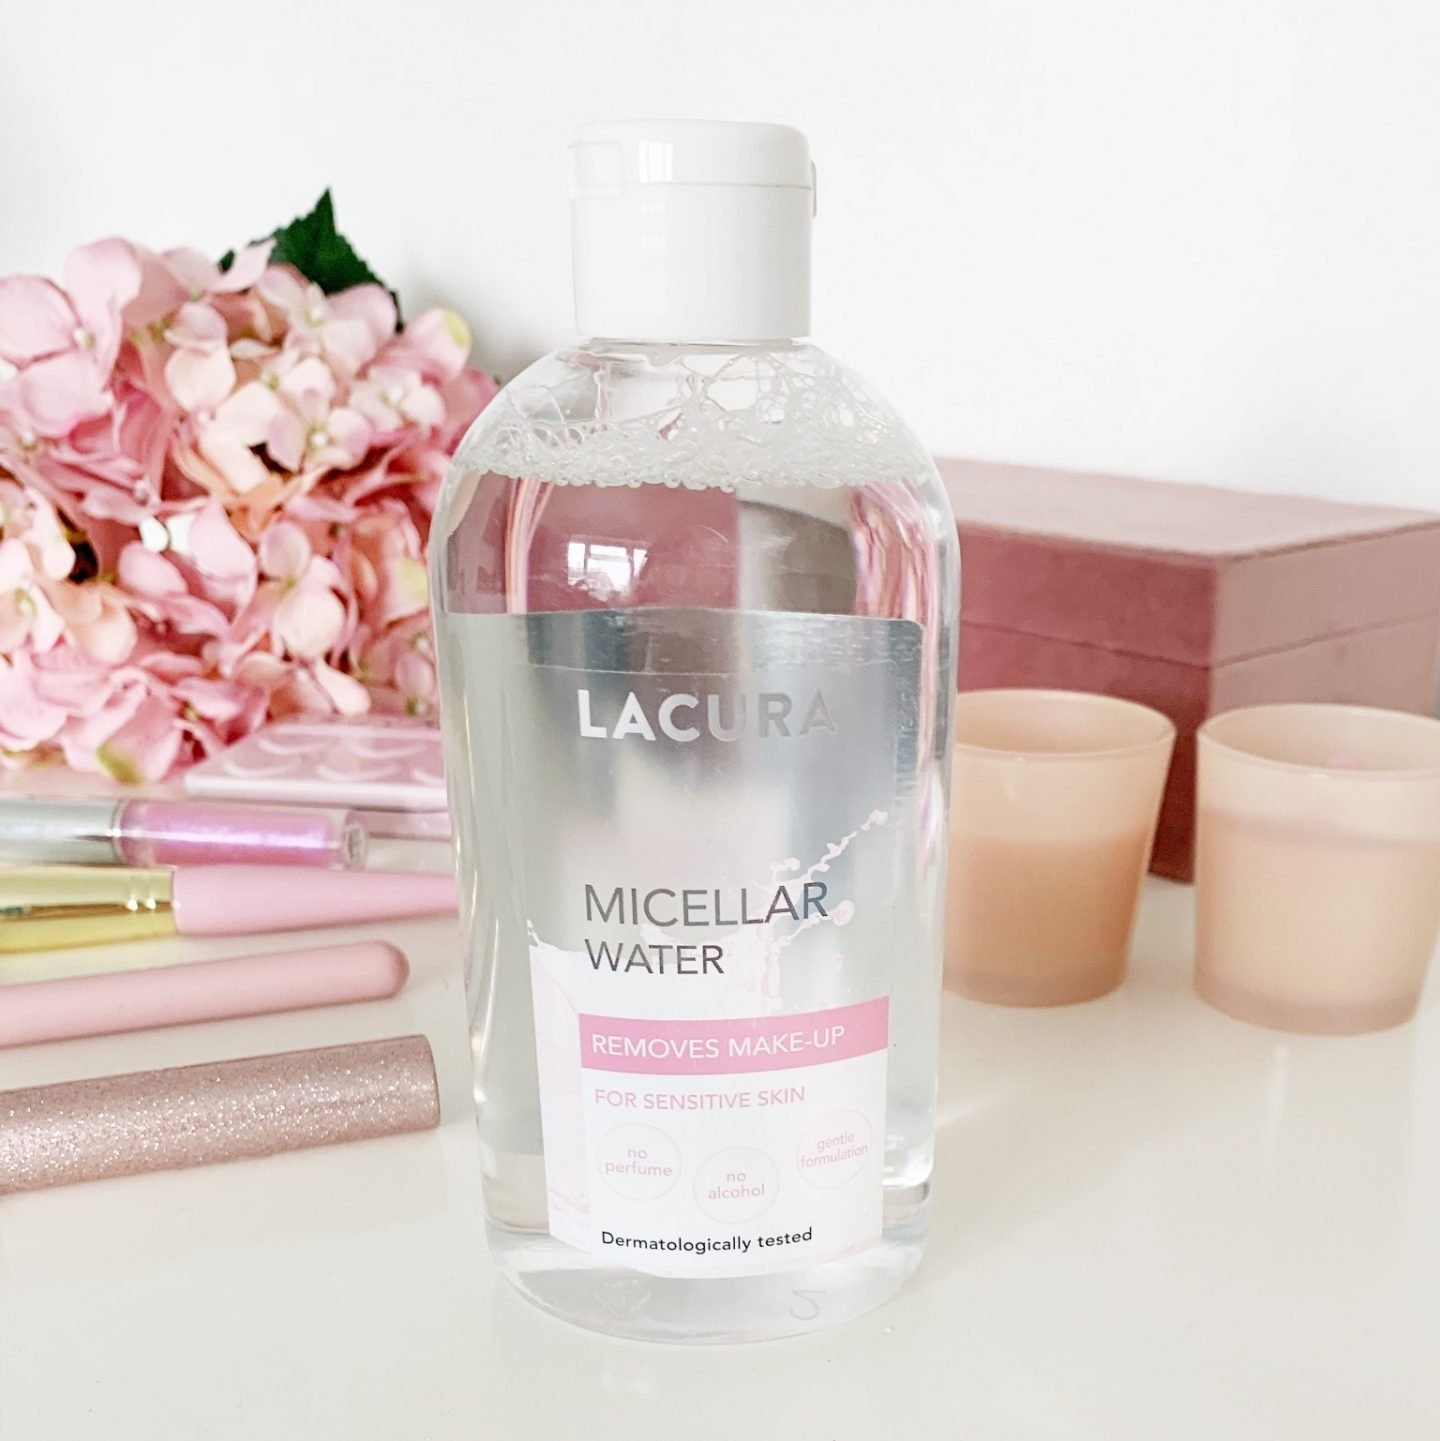 Lacura Micellar Water From Aldi